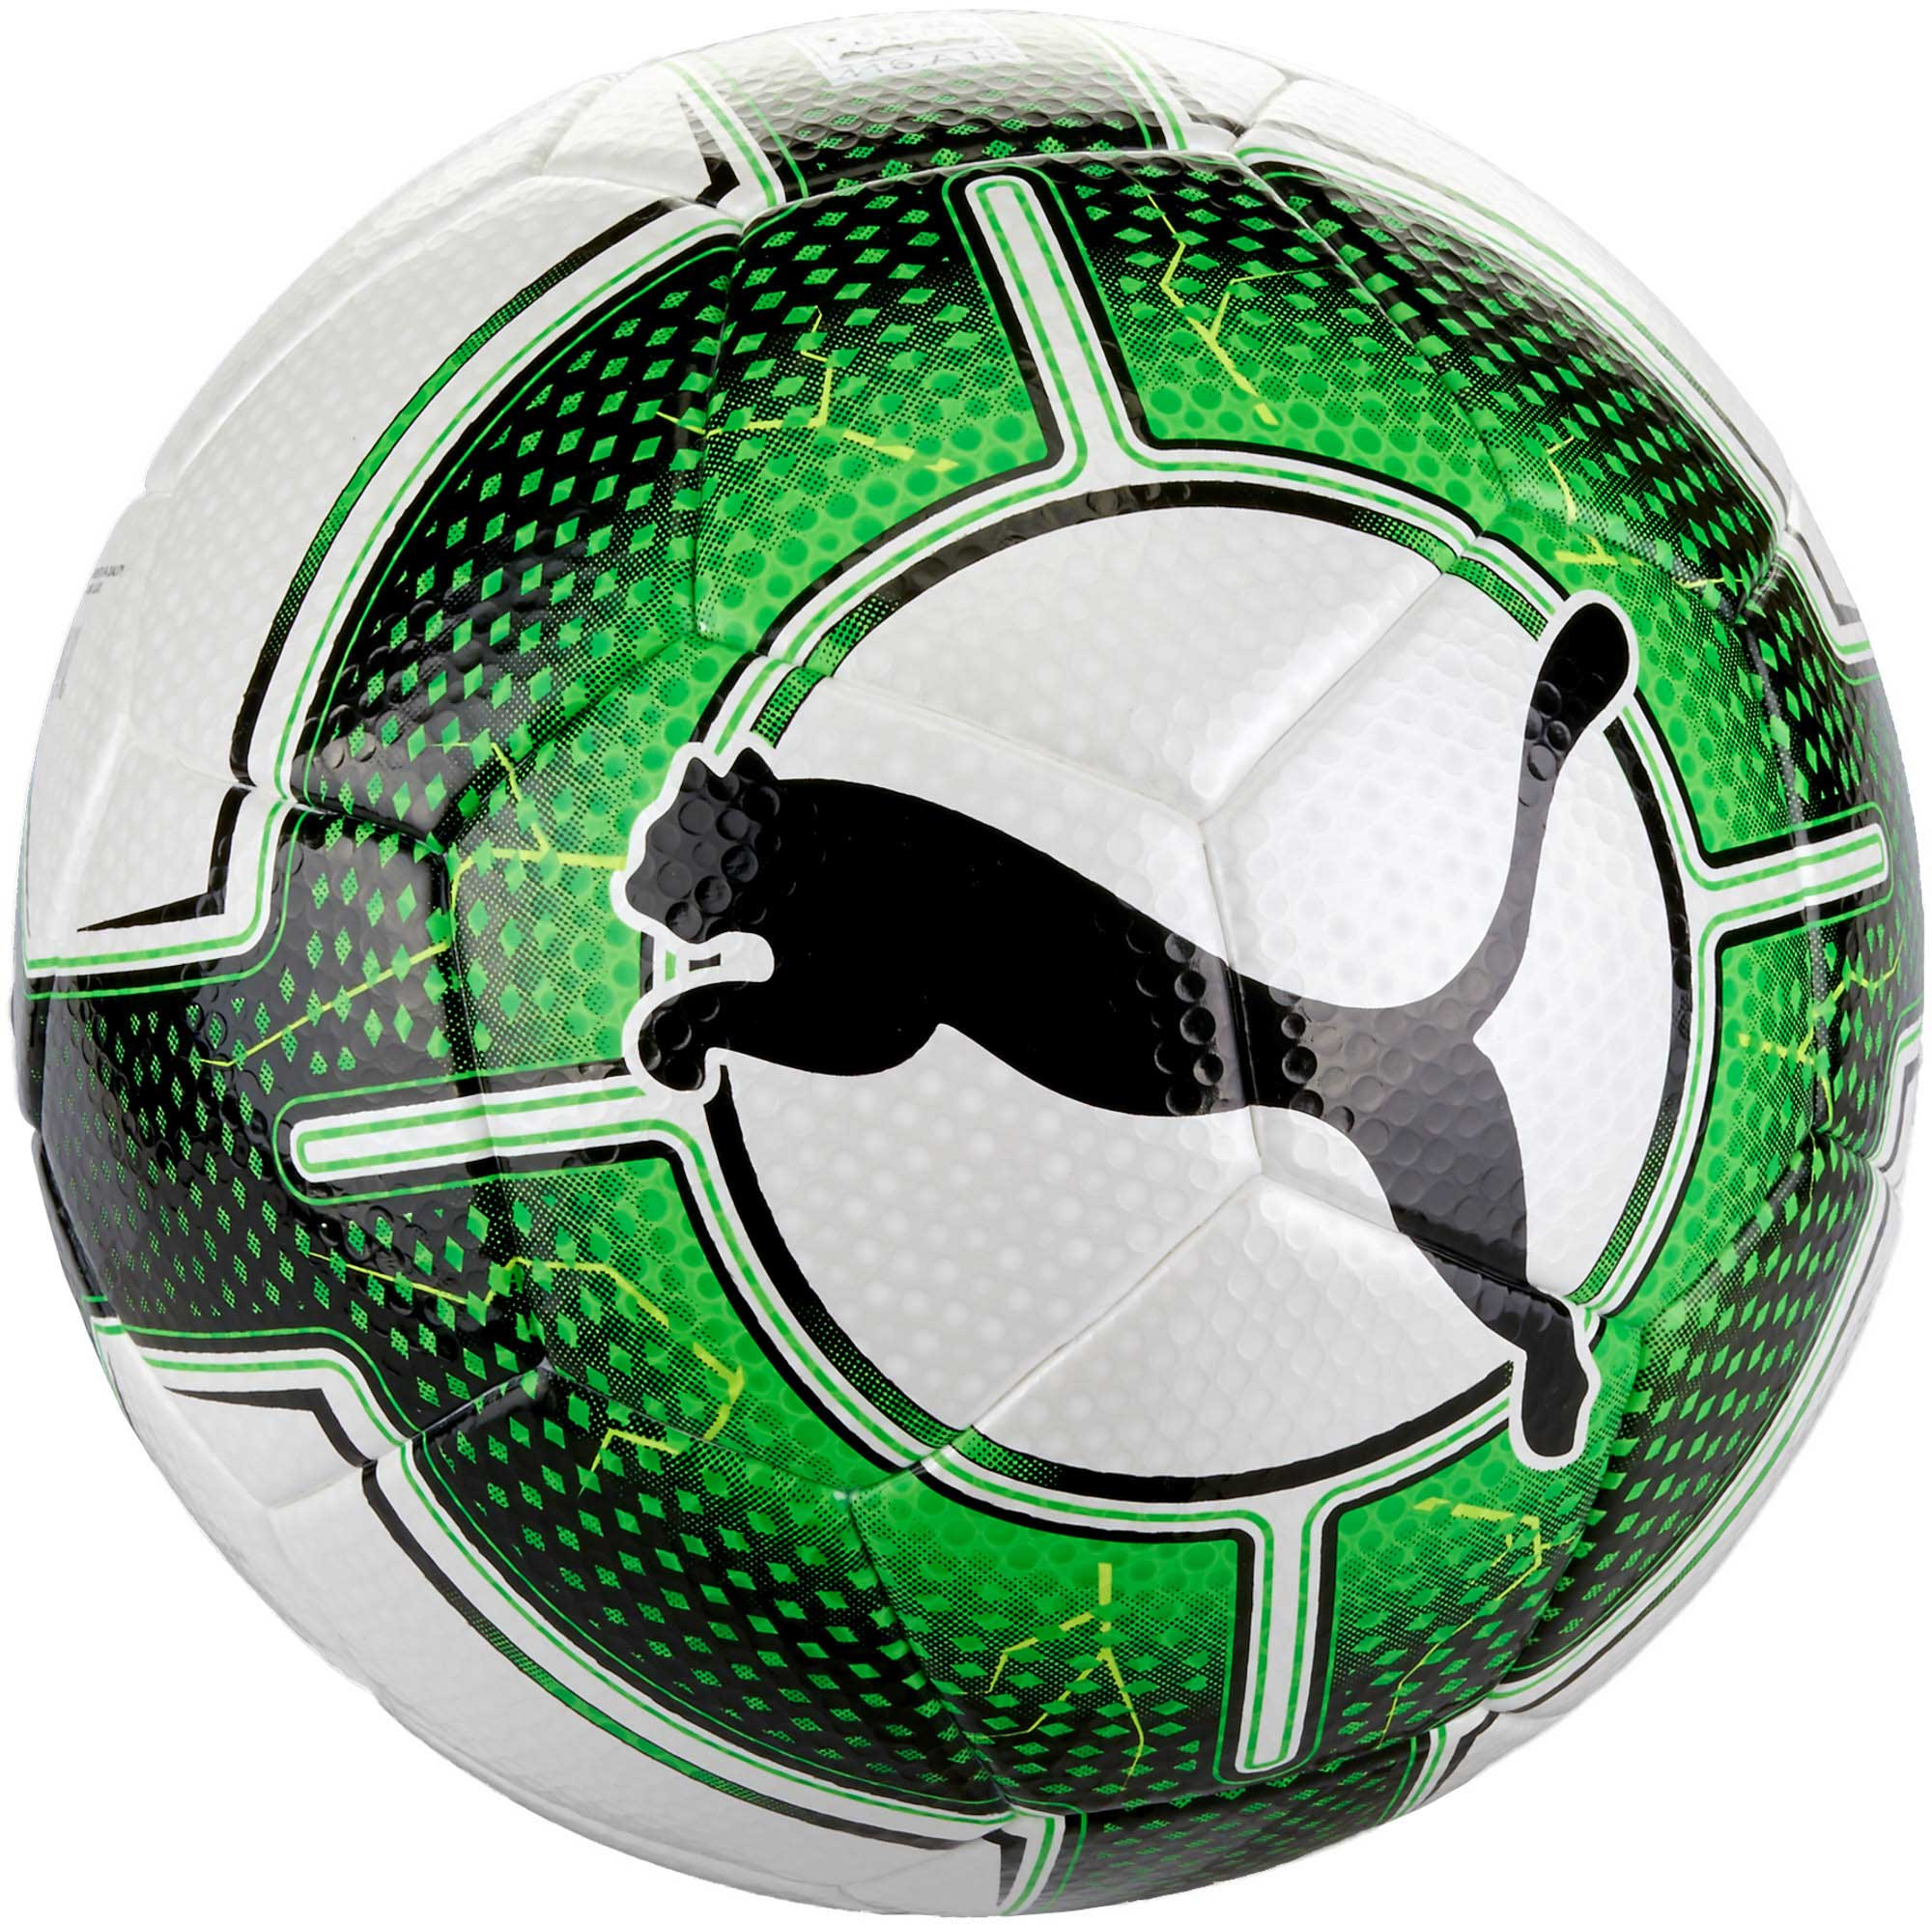 Puma evoPOWER Vigor 3.3 Tournament Match Ball - SoccerPro.com